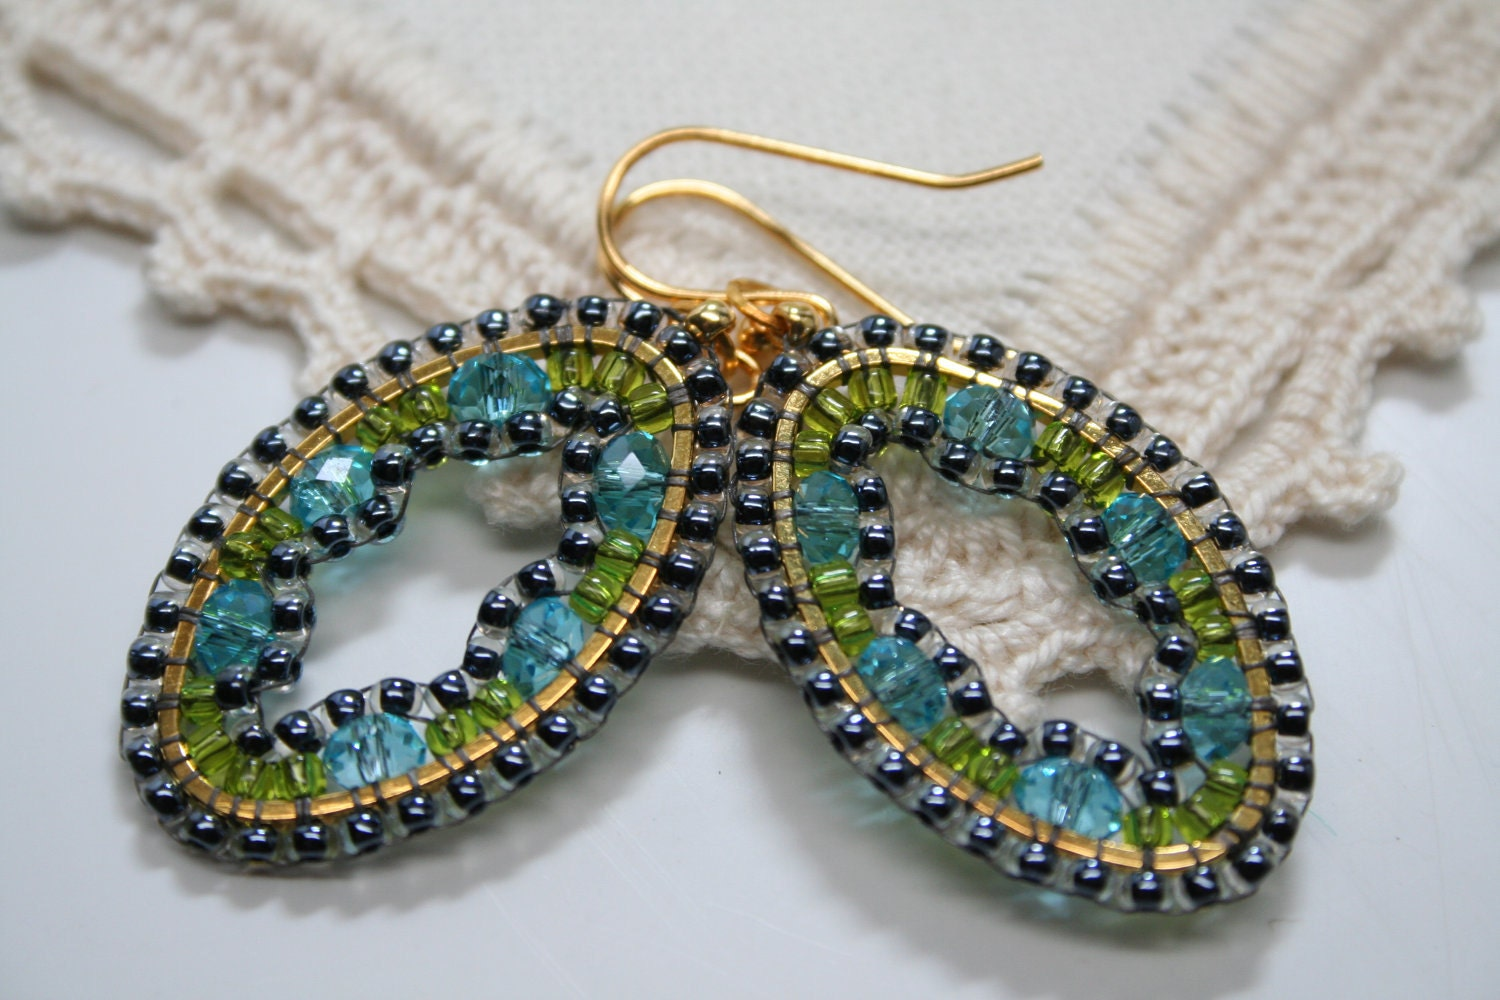 Crystal Embroidered Mosaic Seed Bead Earring Hoops